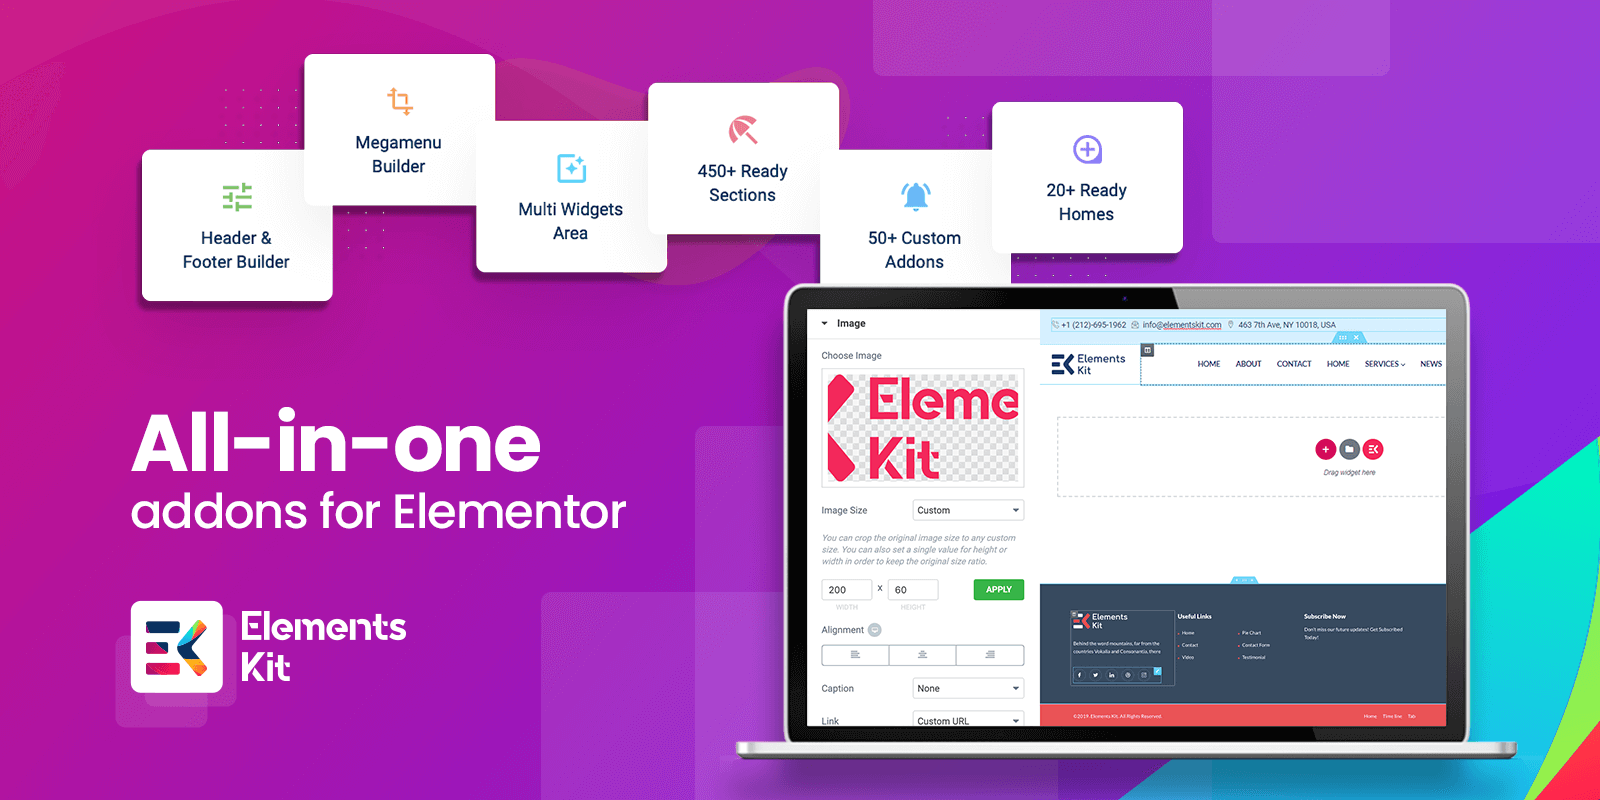 ElementsKit: All in one addons for Elementor